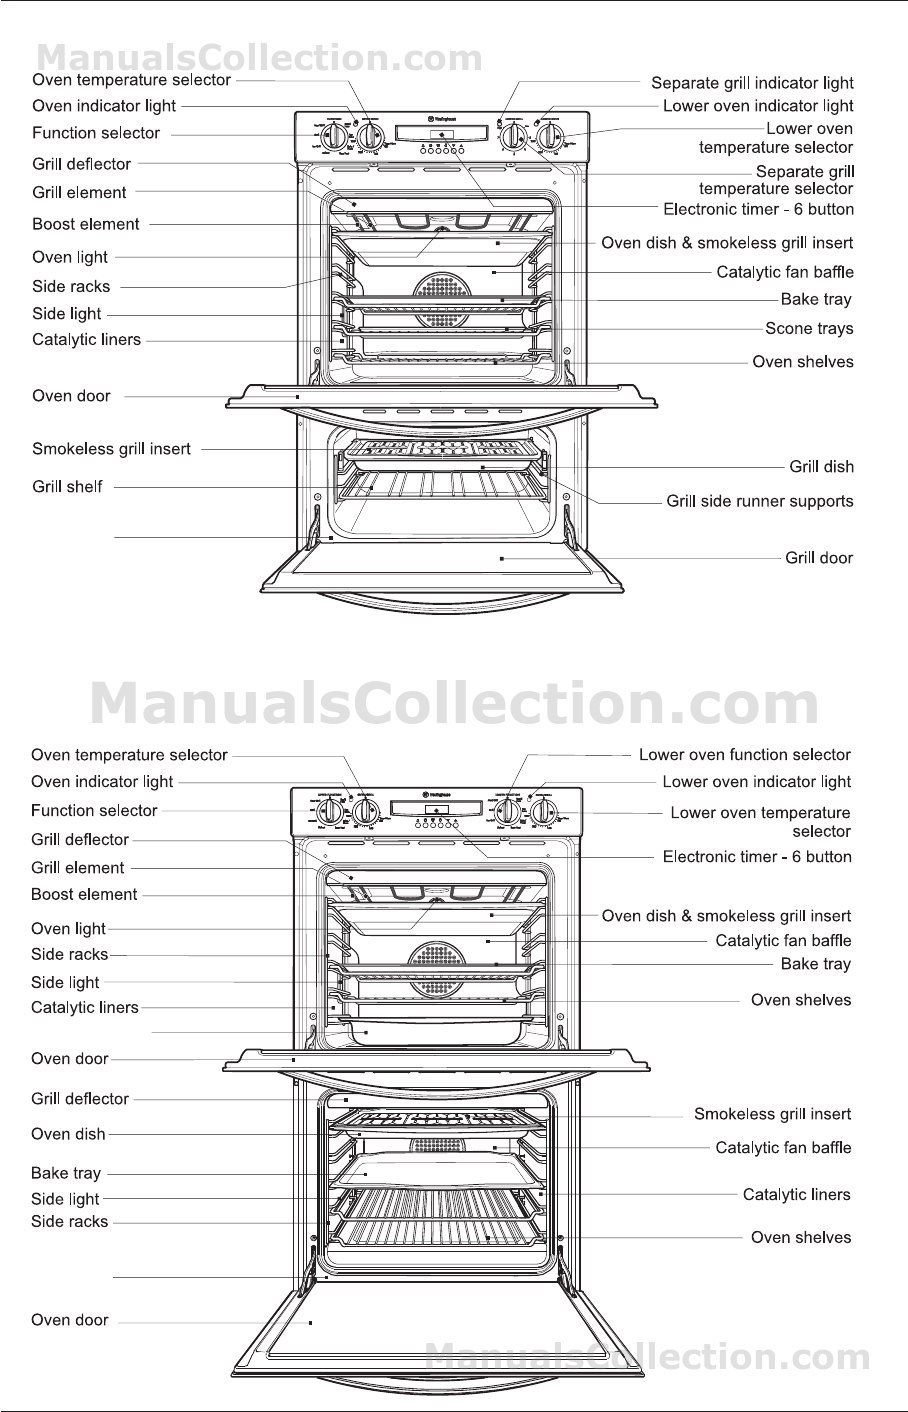 westinghouse freestyle 662 oven manual